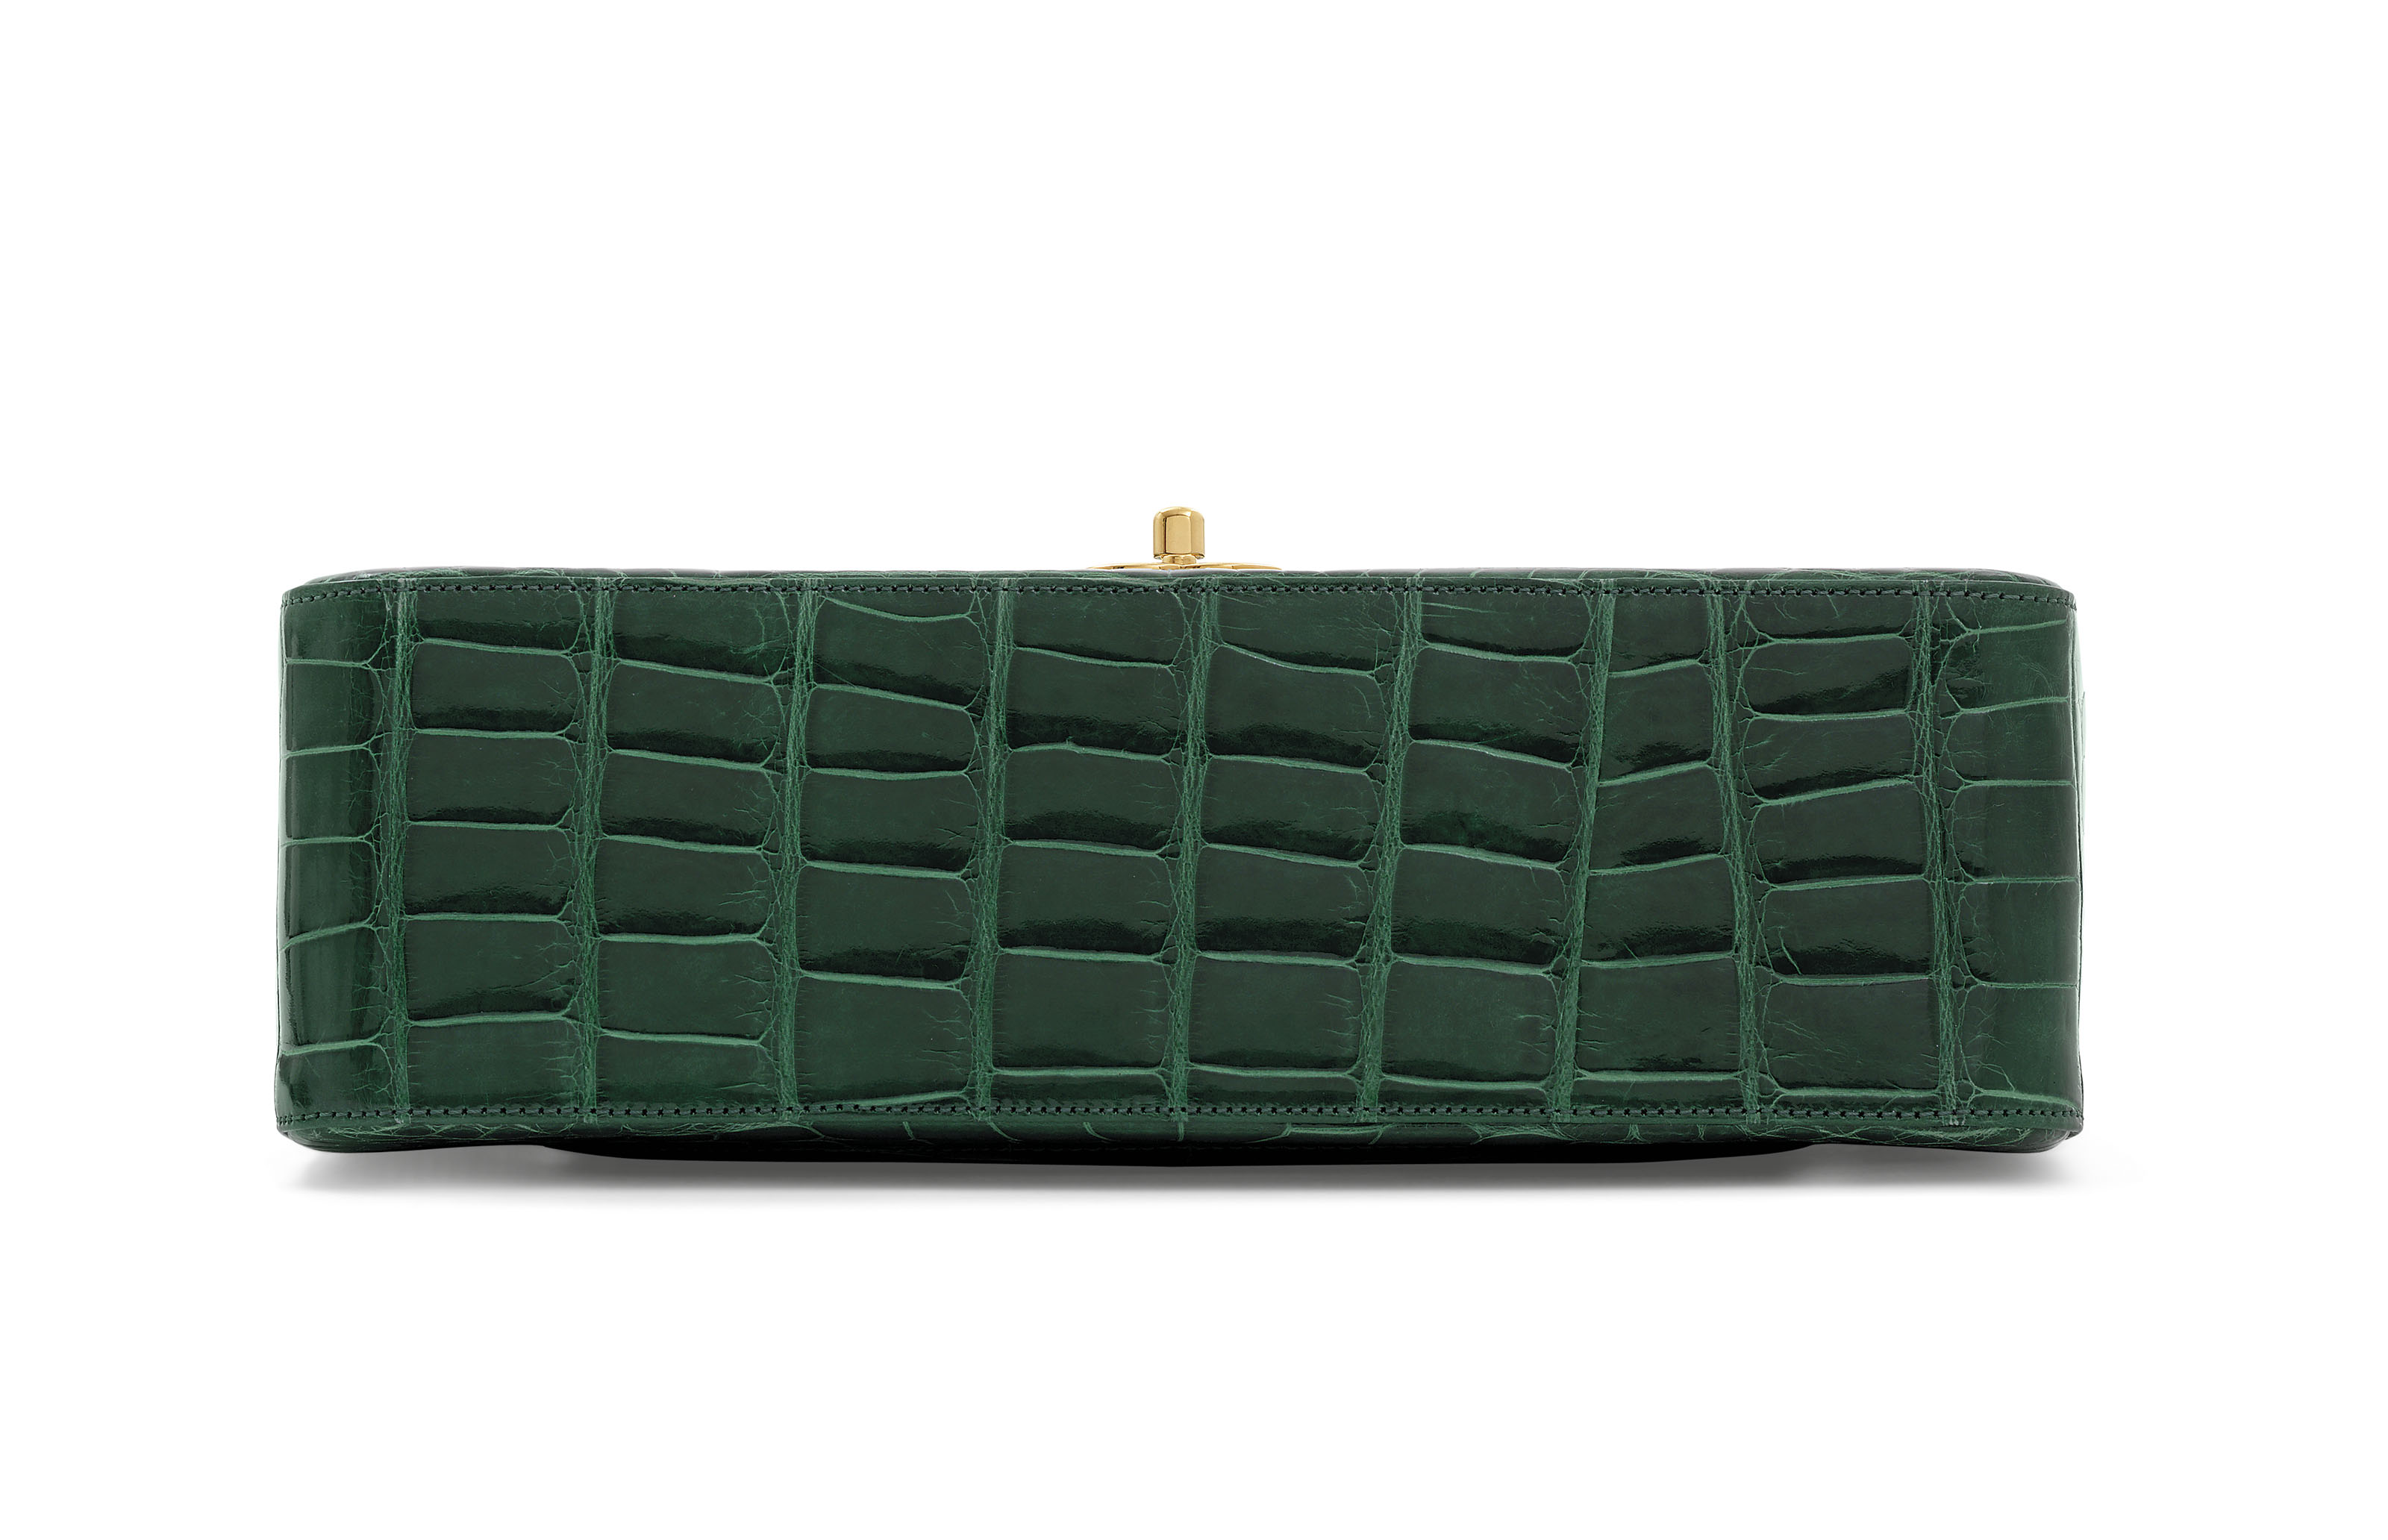 361c3c6b9af448 A SHINY EMERALD GREEN ALLIGATOR JUMBO DOUBLE FLAP WITH GOLD HARDWARE ...